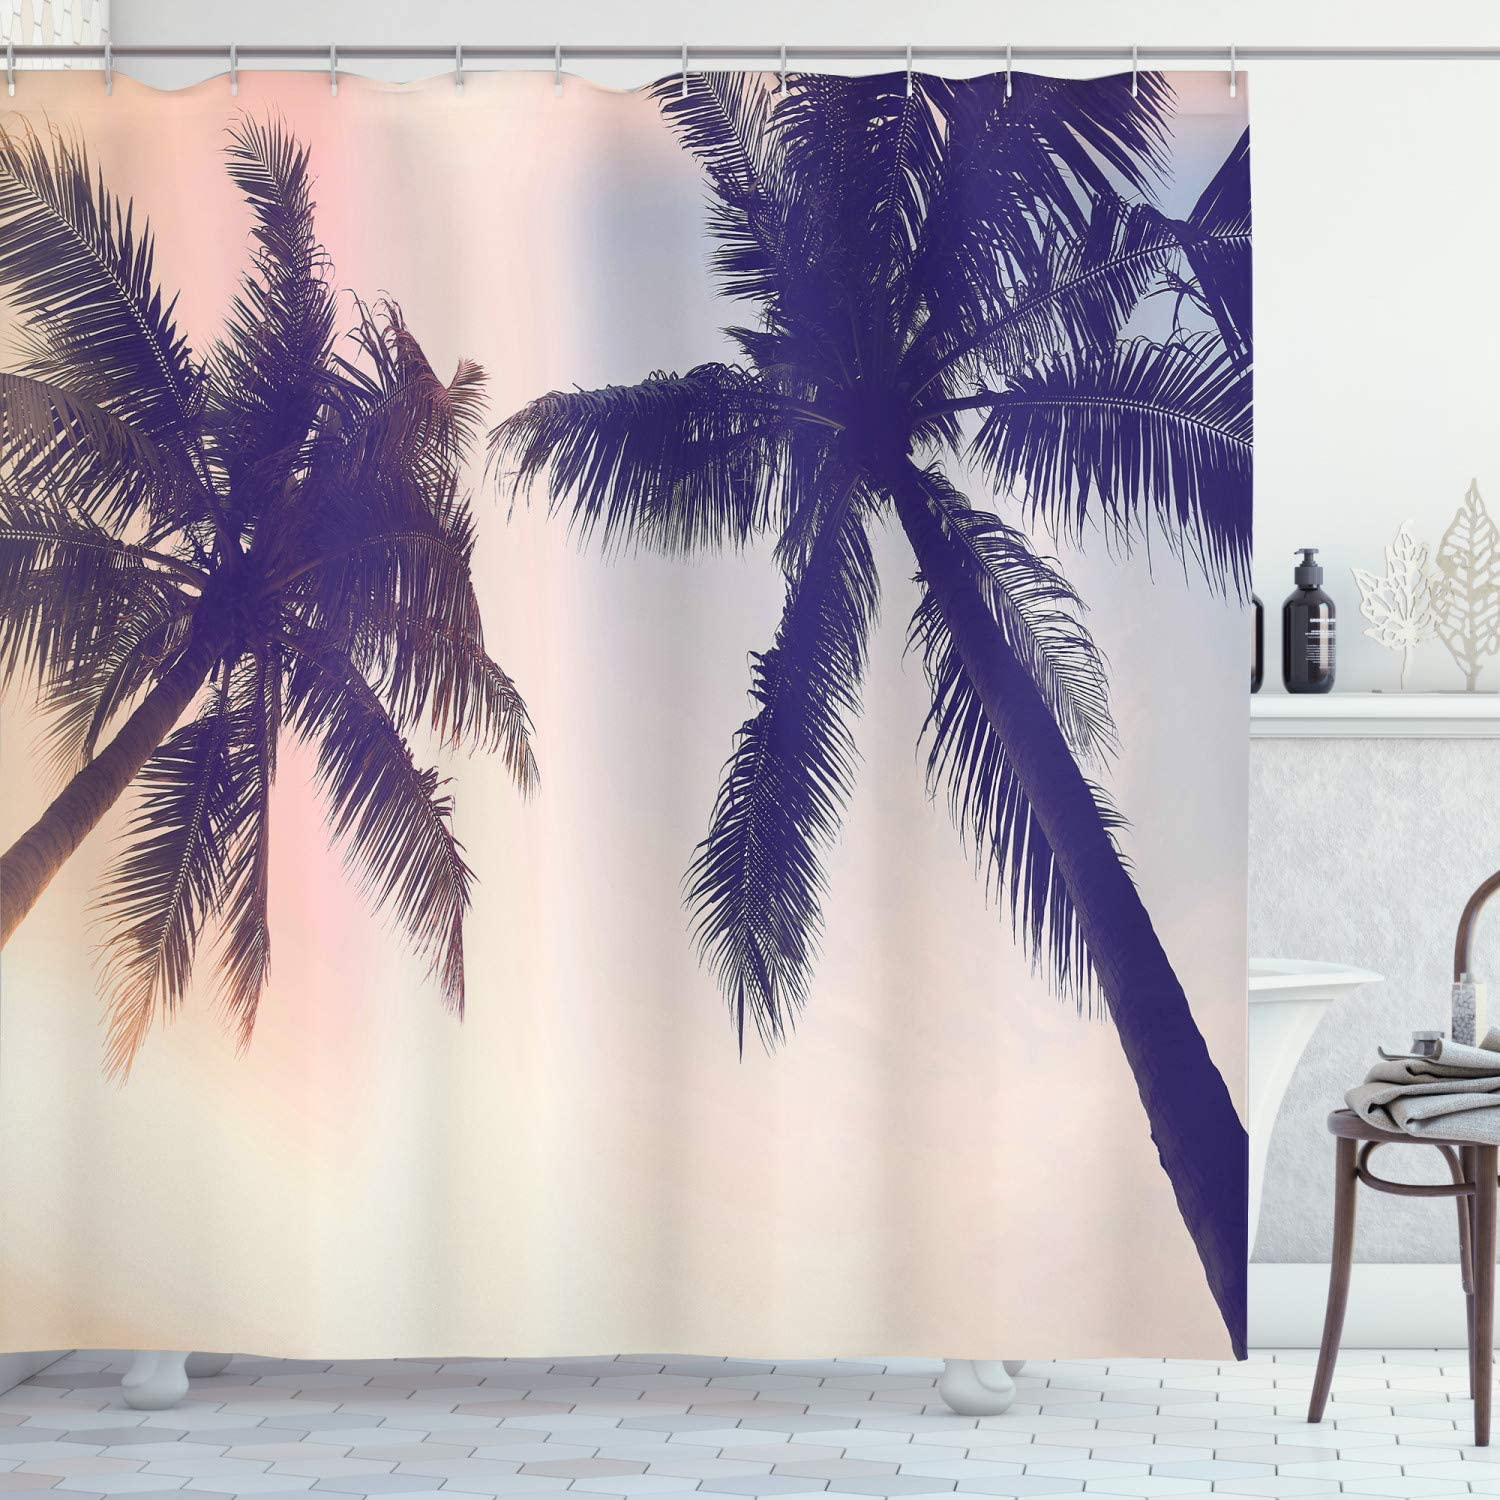 Tropical Shower Curtain Coconut Palm Trees Print for Bathroom 70 Inches Long